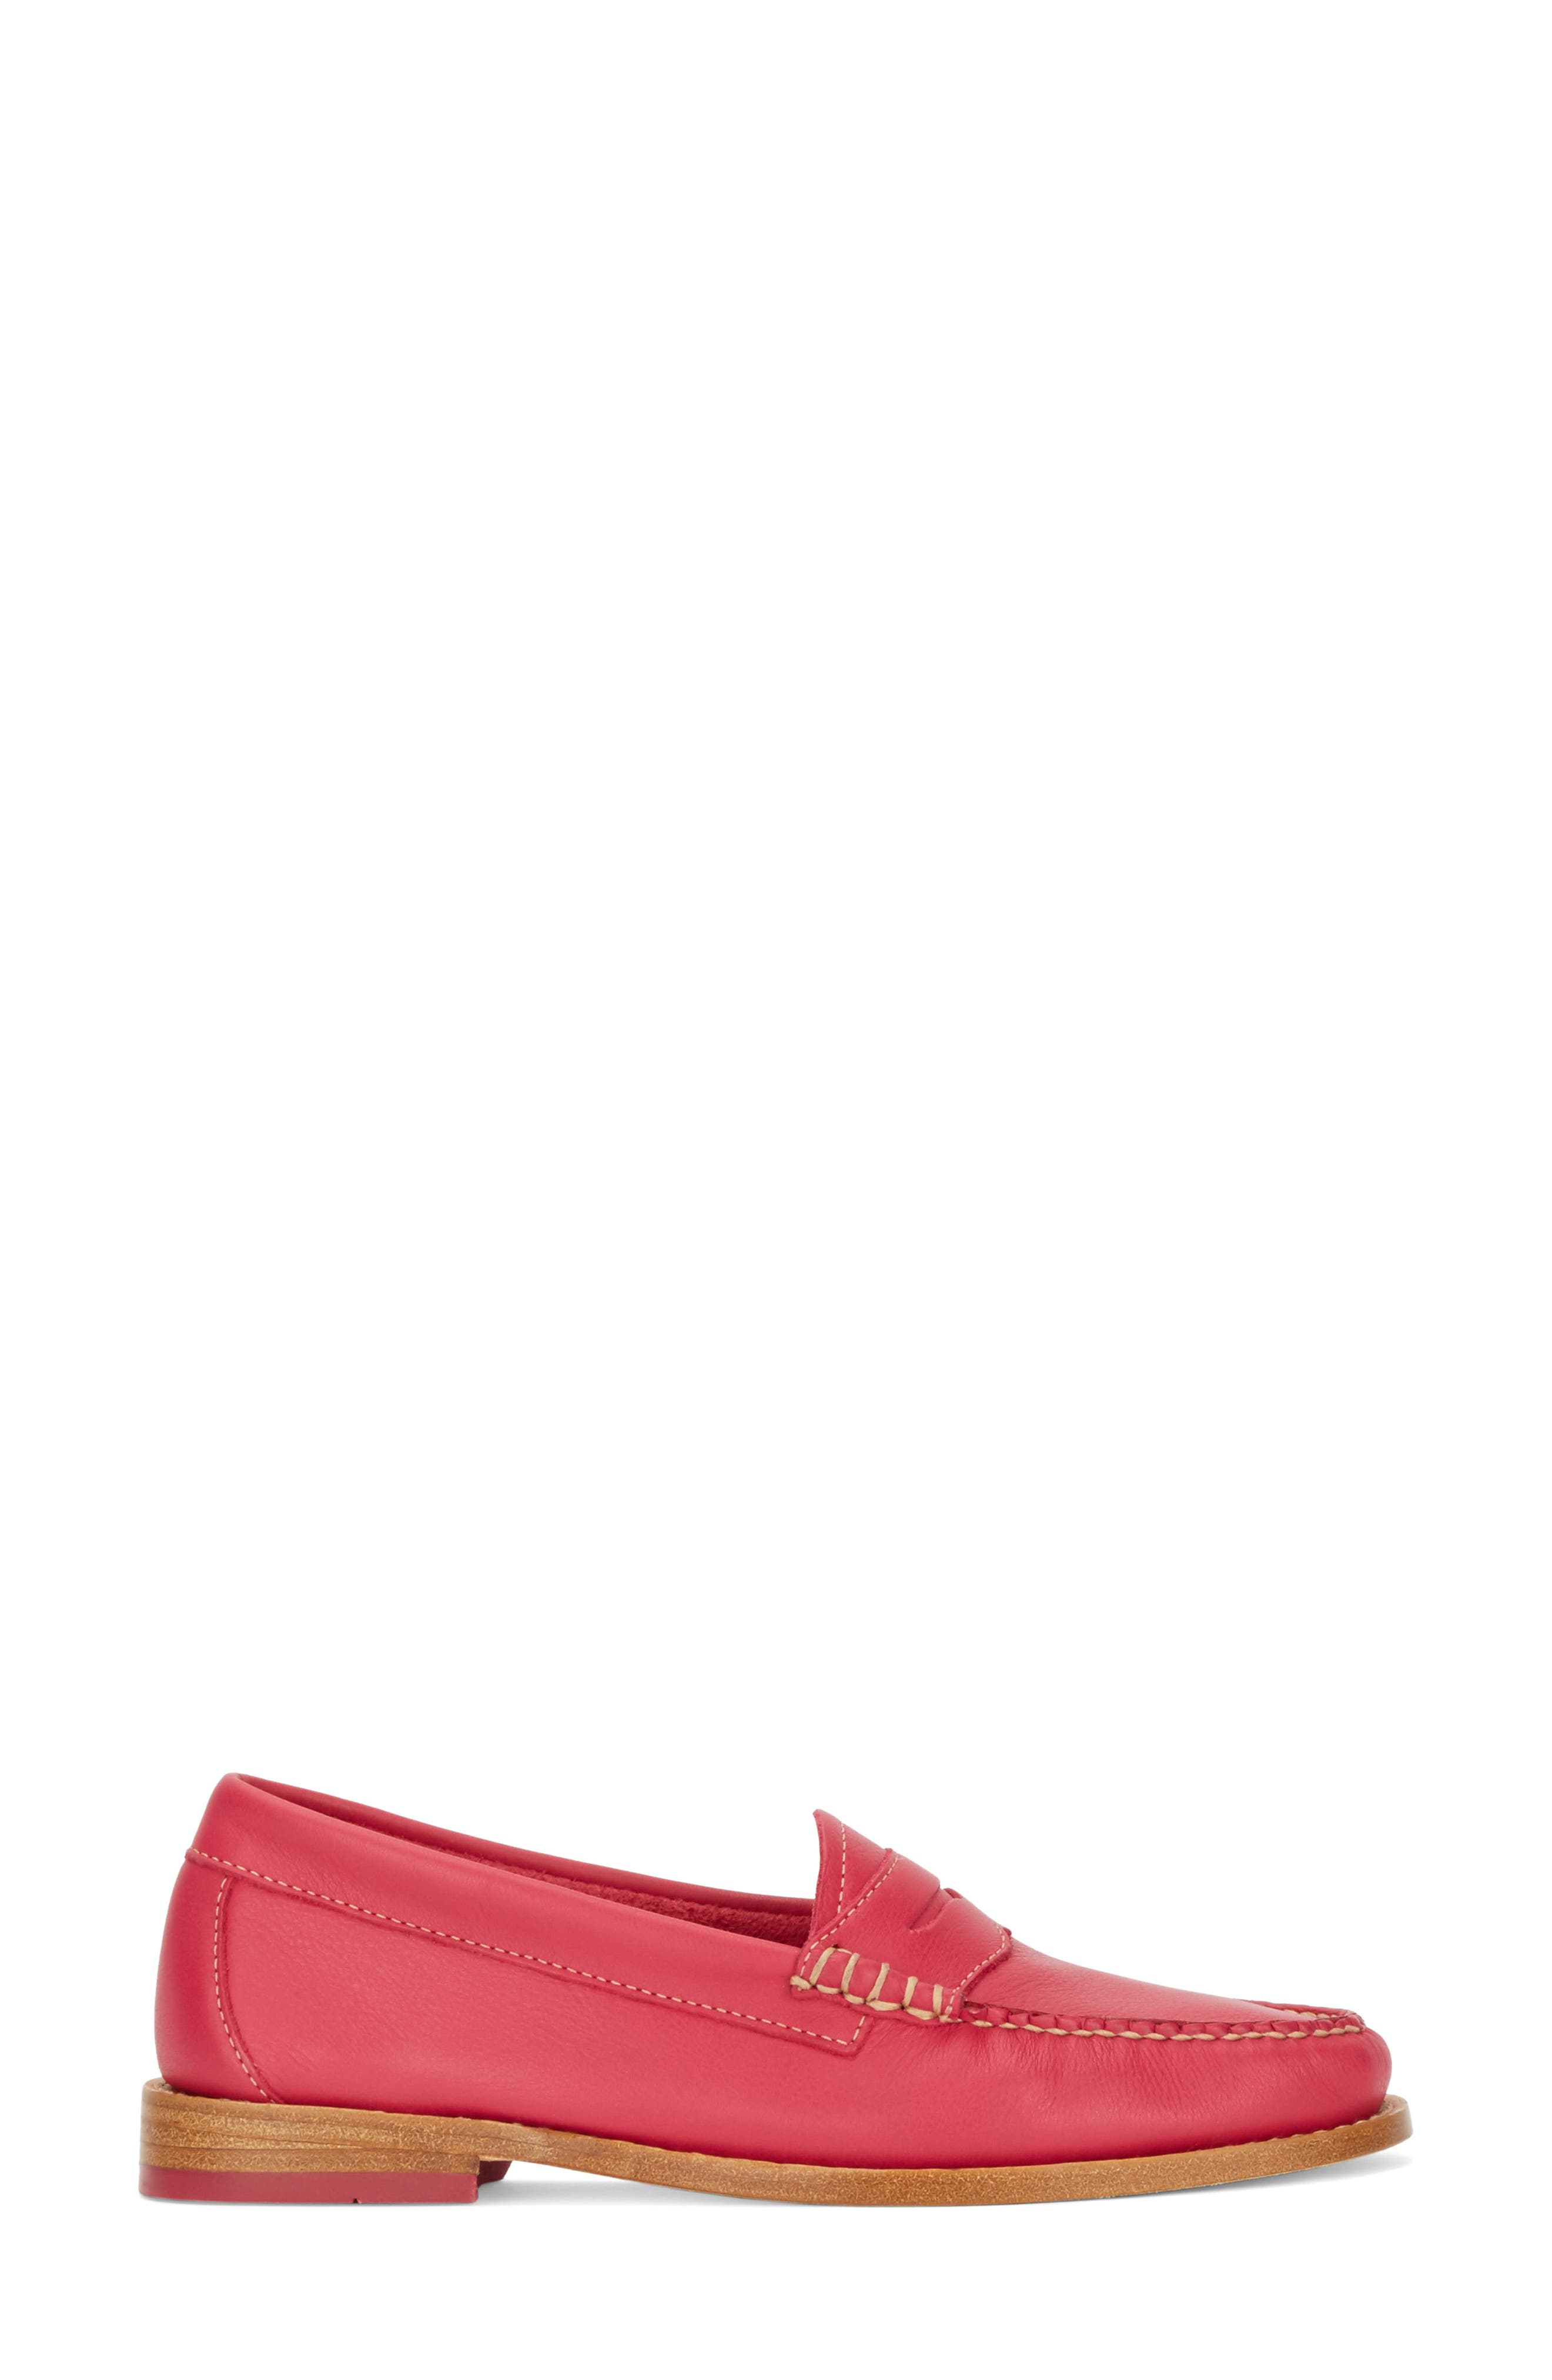 'Whitney' Loafer,                             Alternate thumbnail 3, color,                             BERRY PINK LEATHER